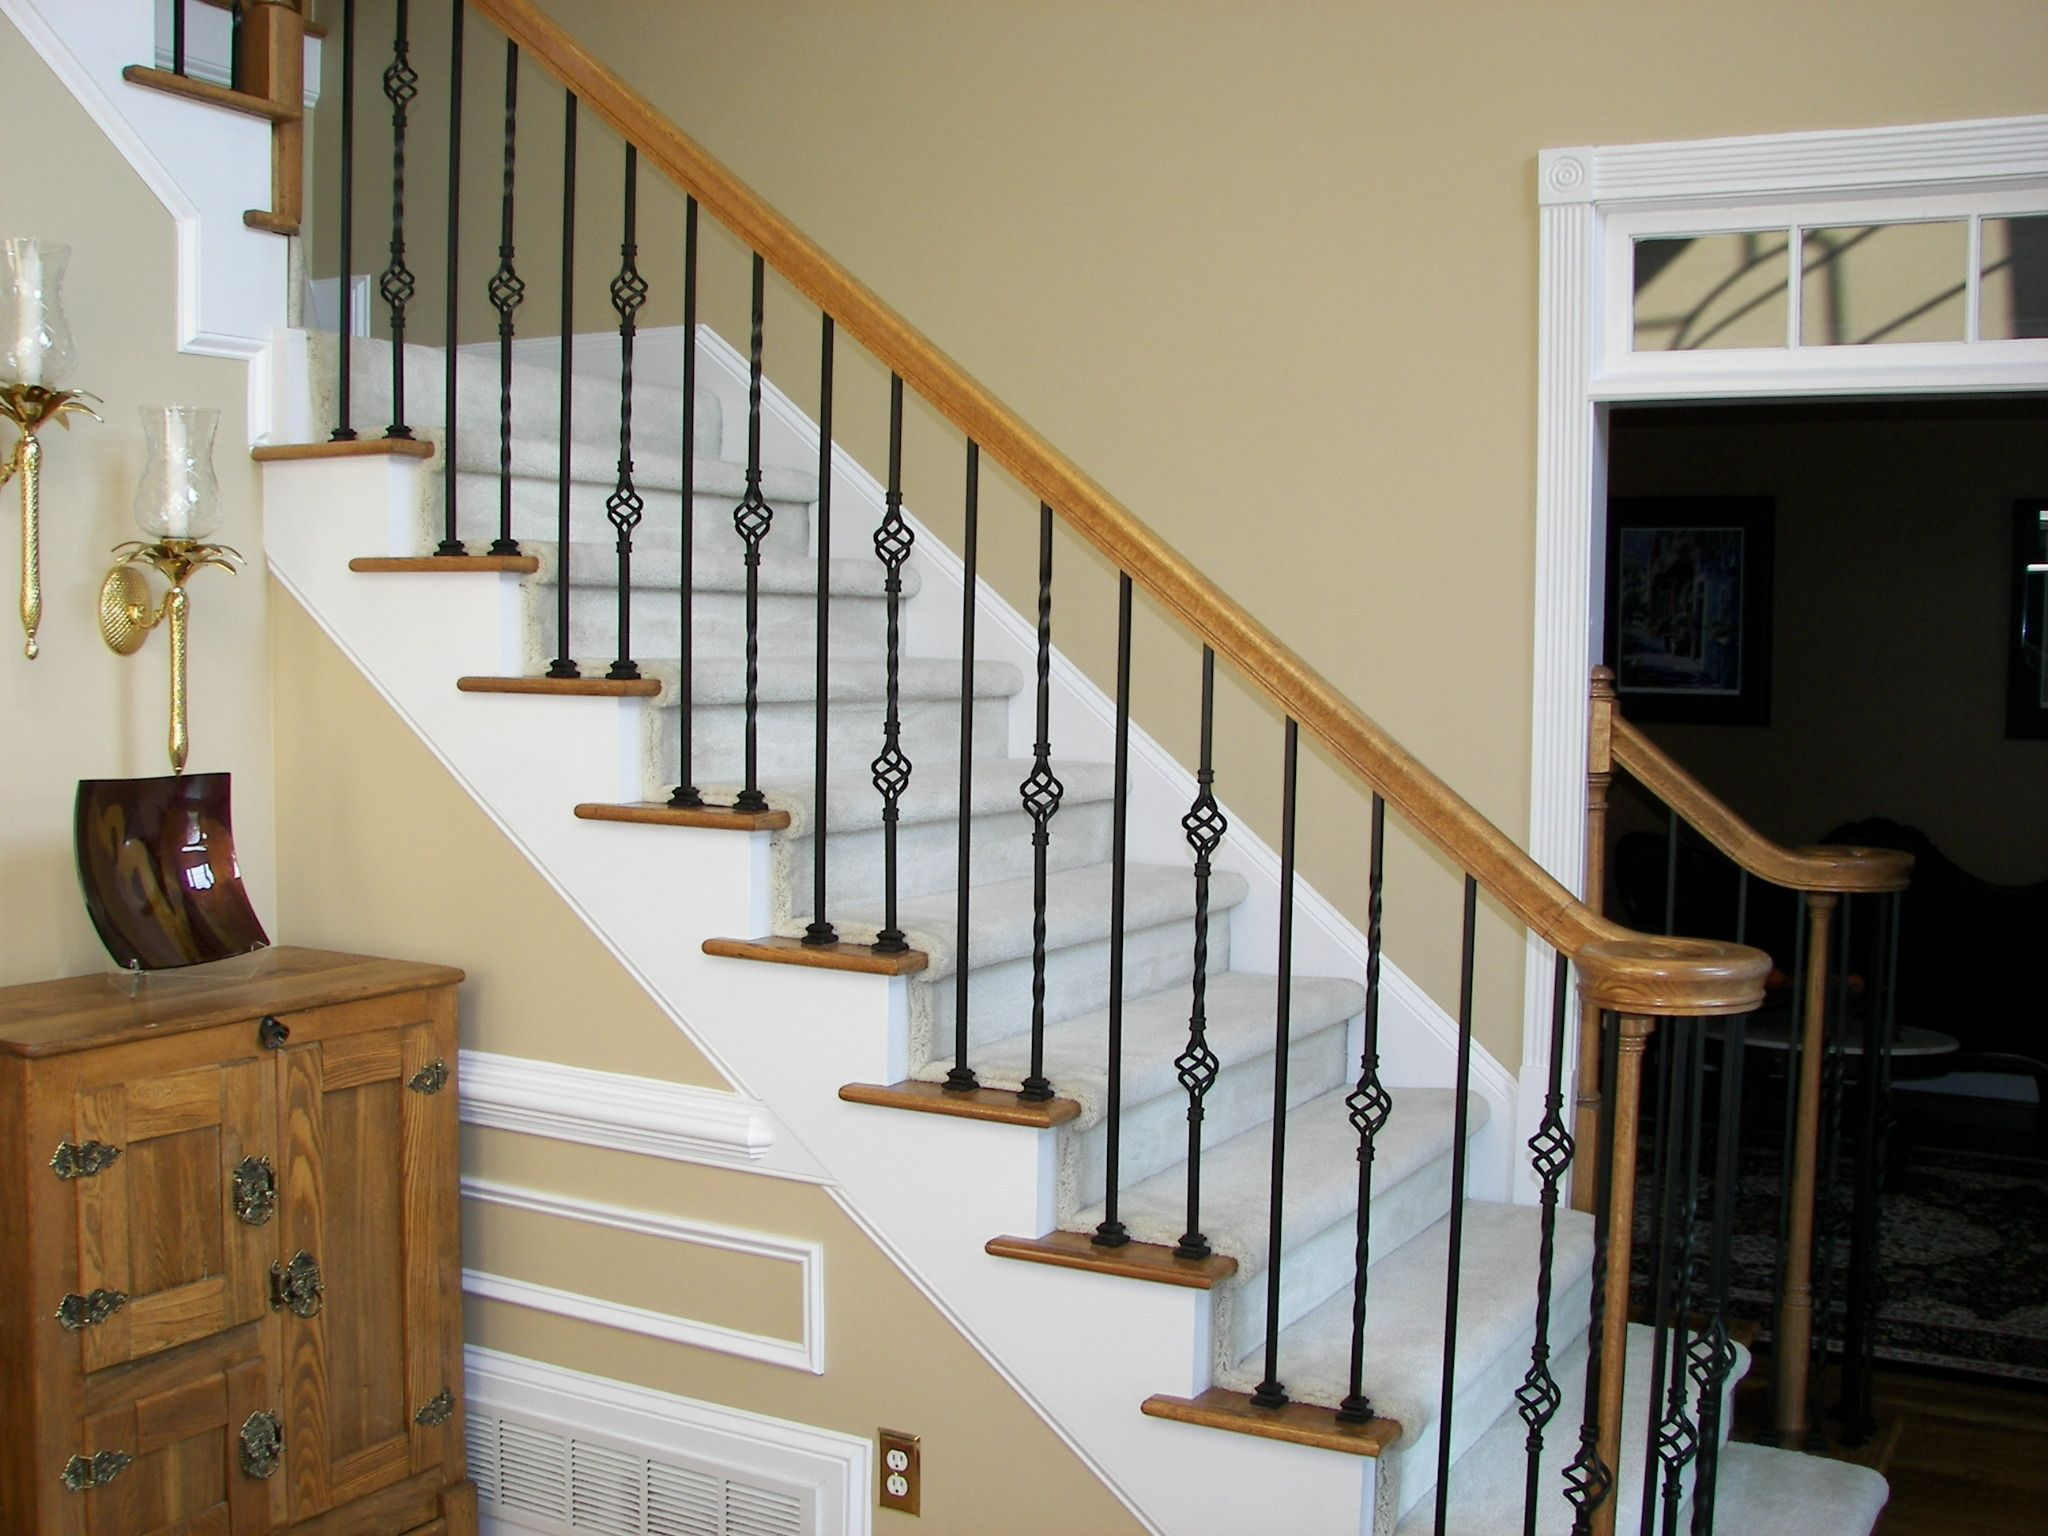 Best Double Basket Baluster Google Search Home Design 640 x 480